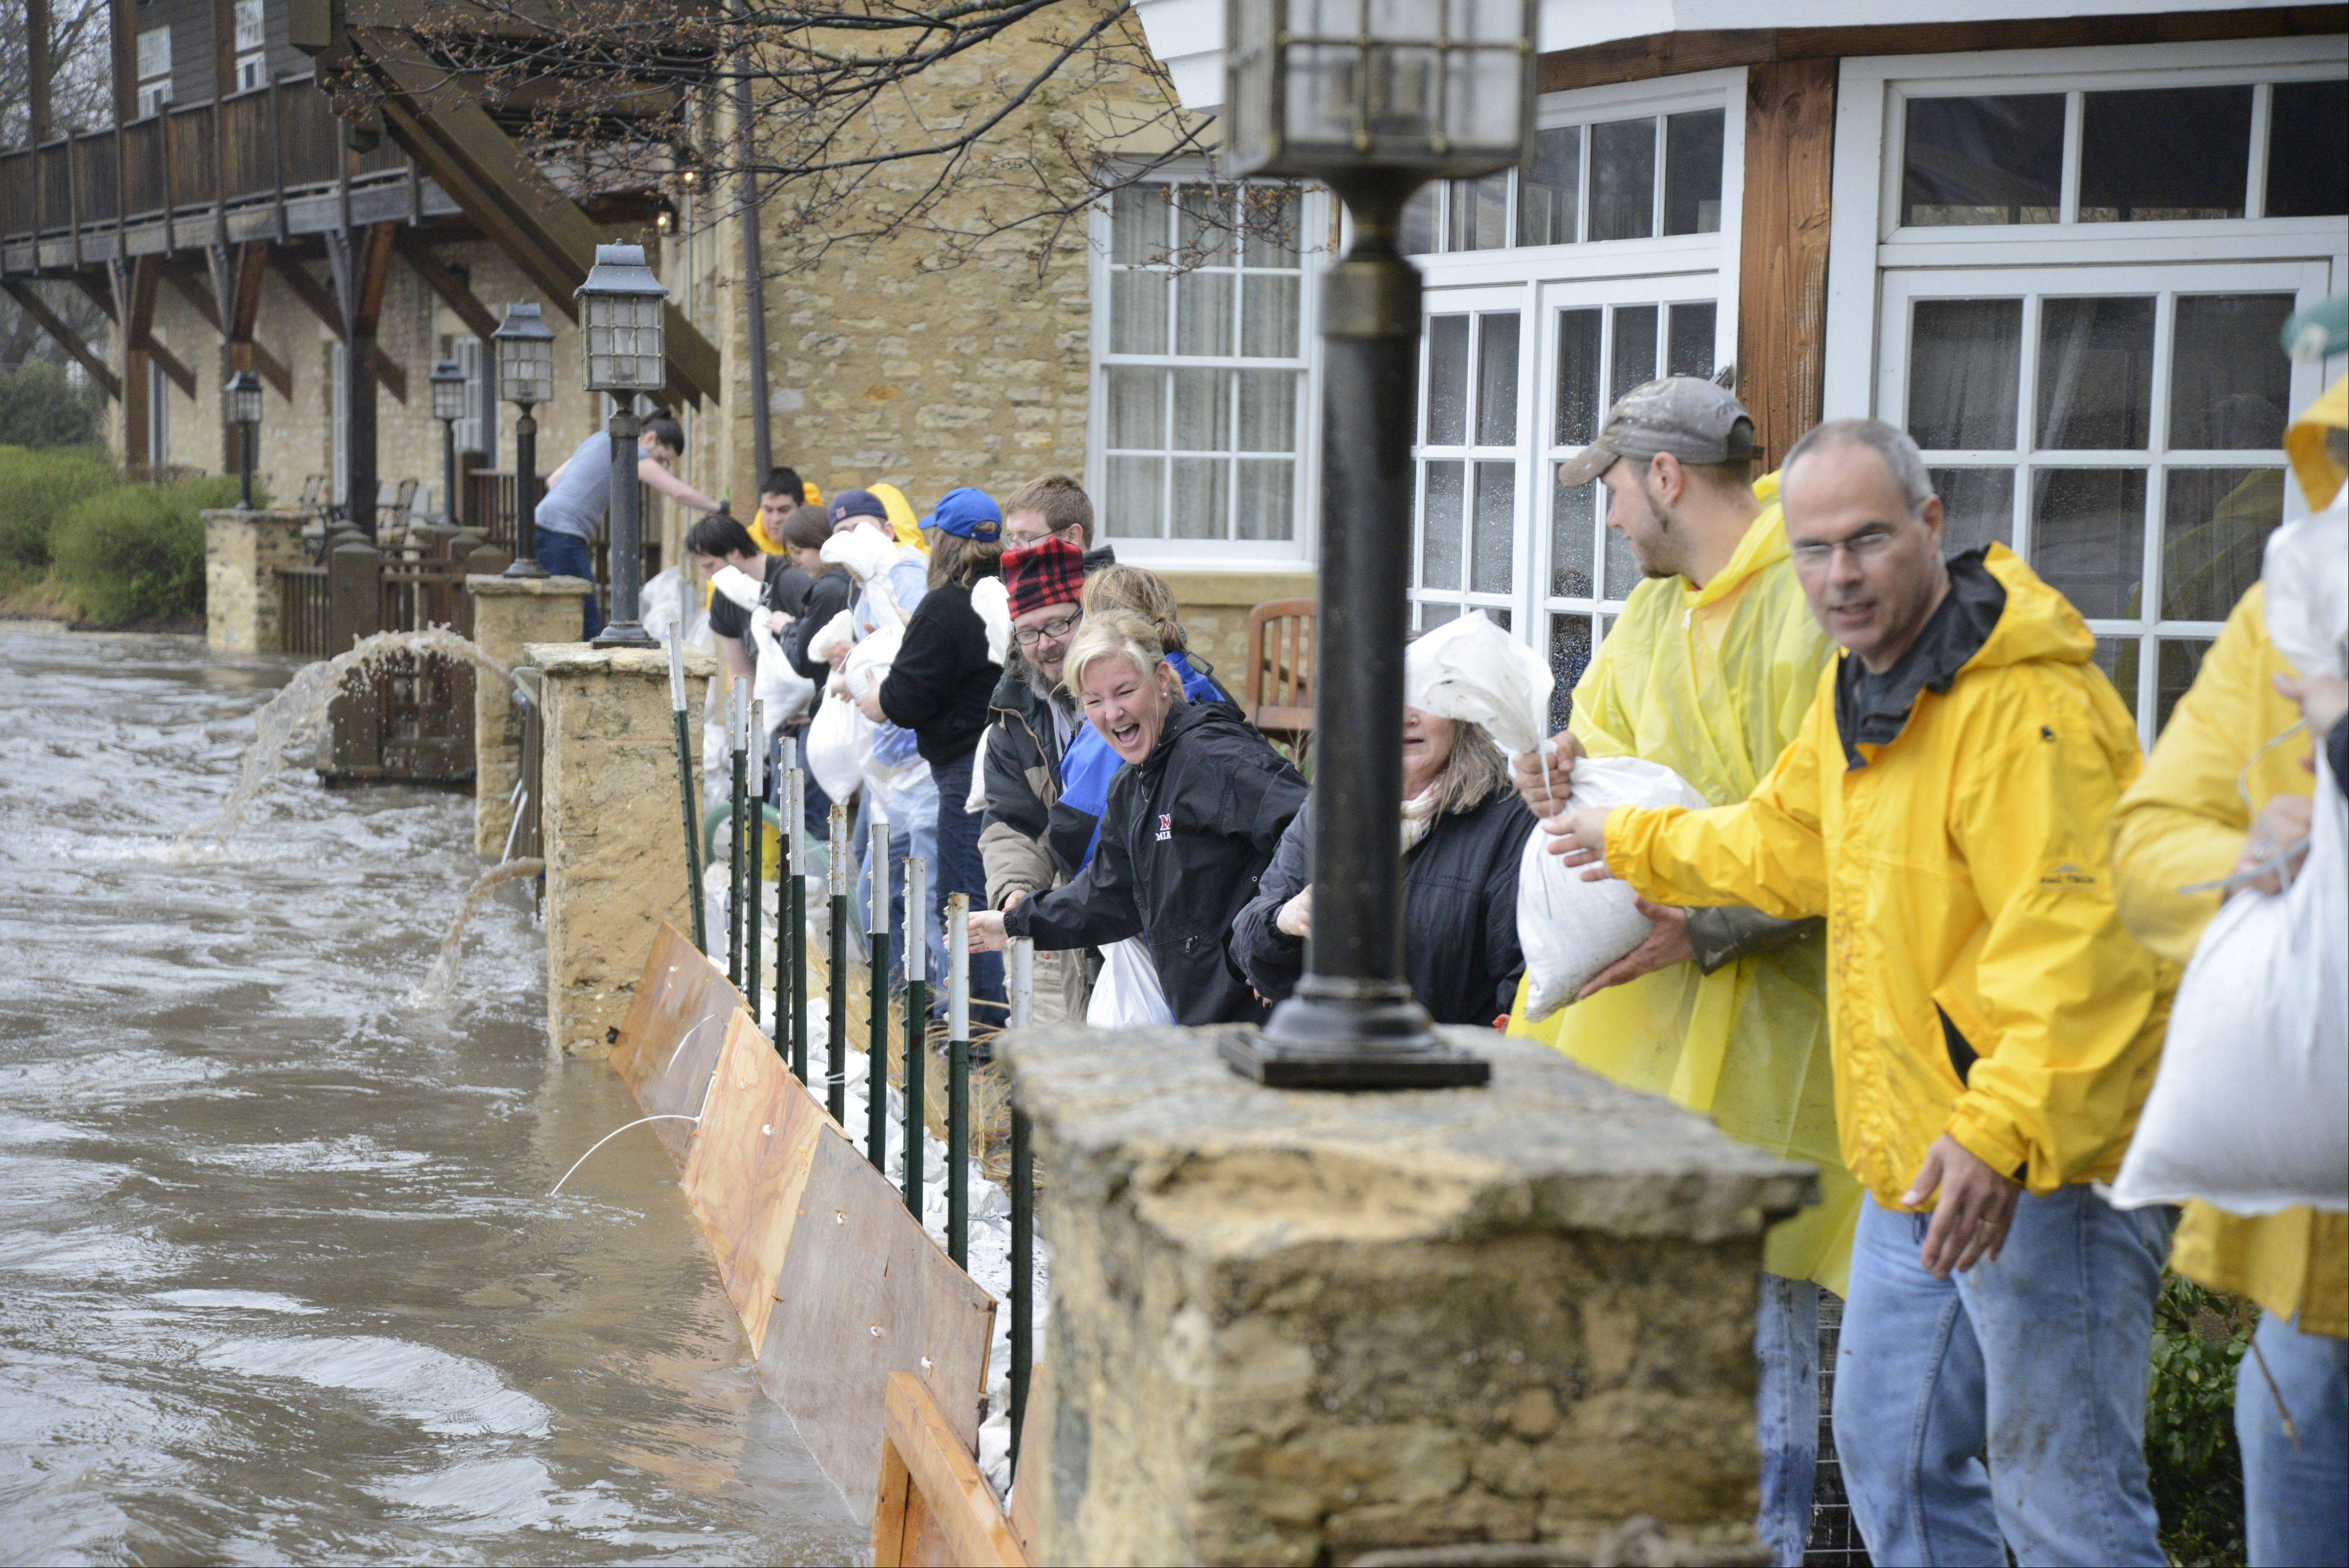 Volunteers stack sandbags Thursday at the waterline by the Herrington Inn in Geneva.